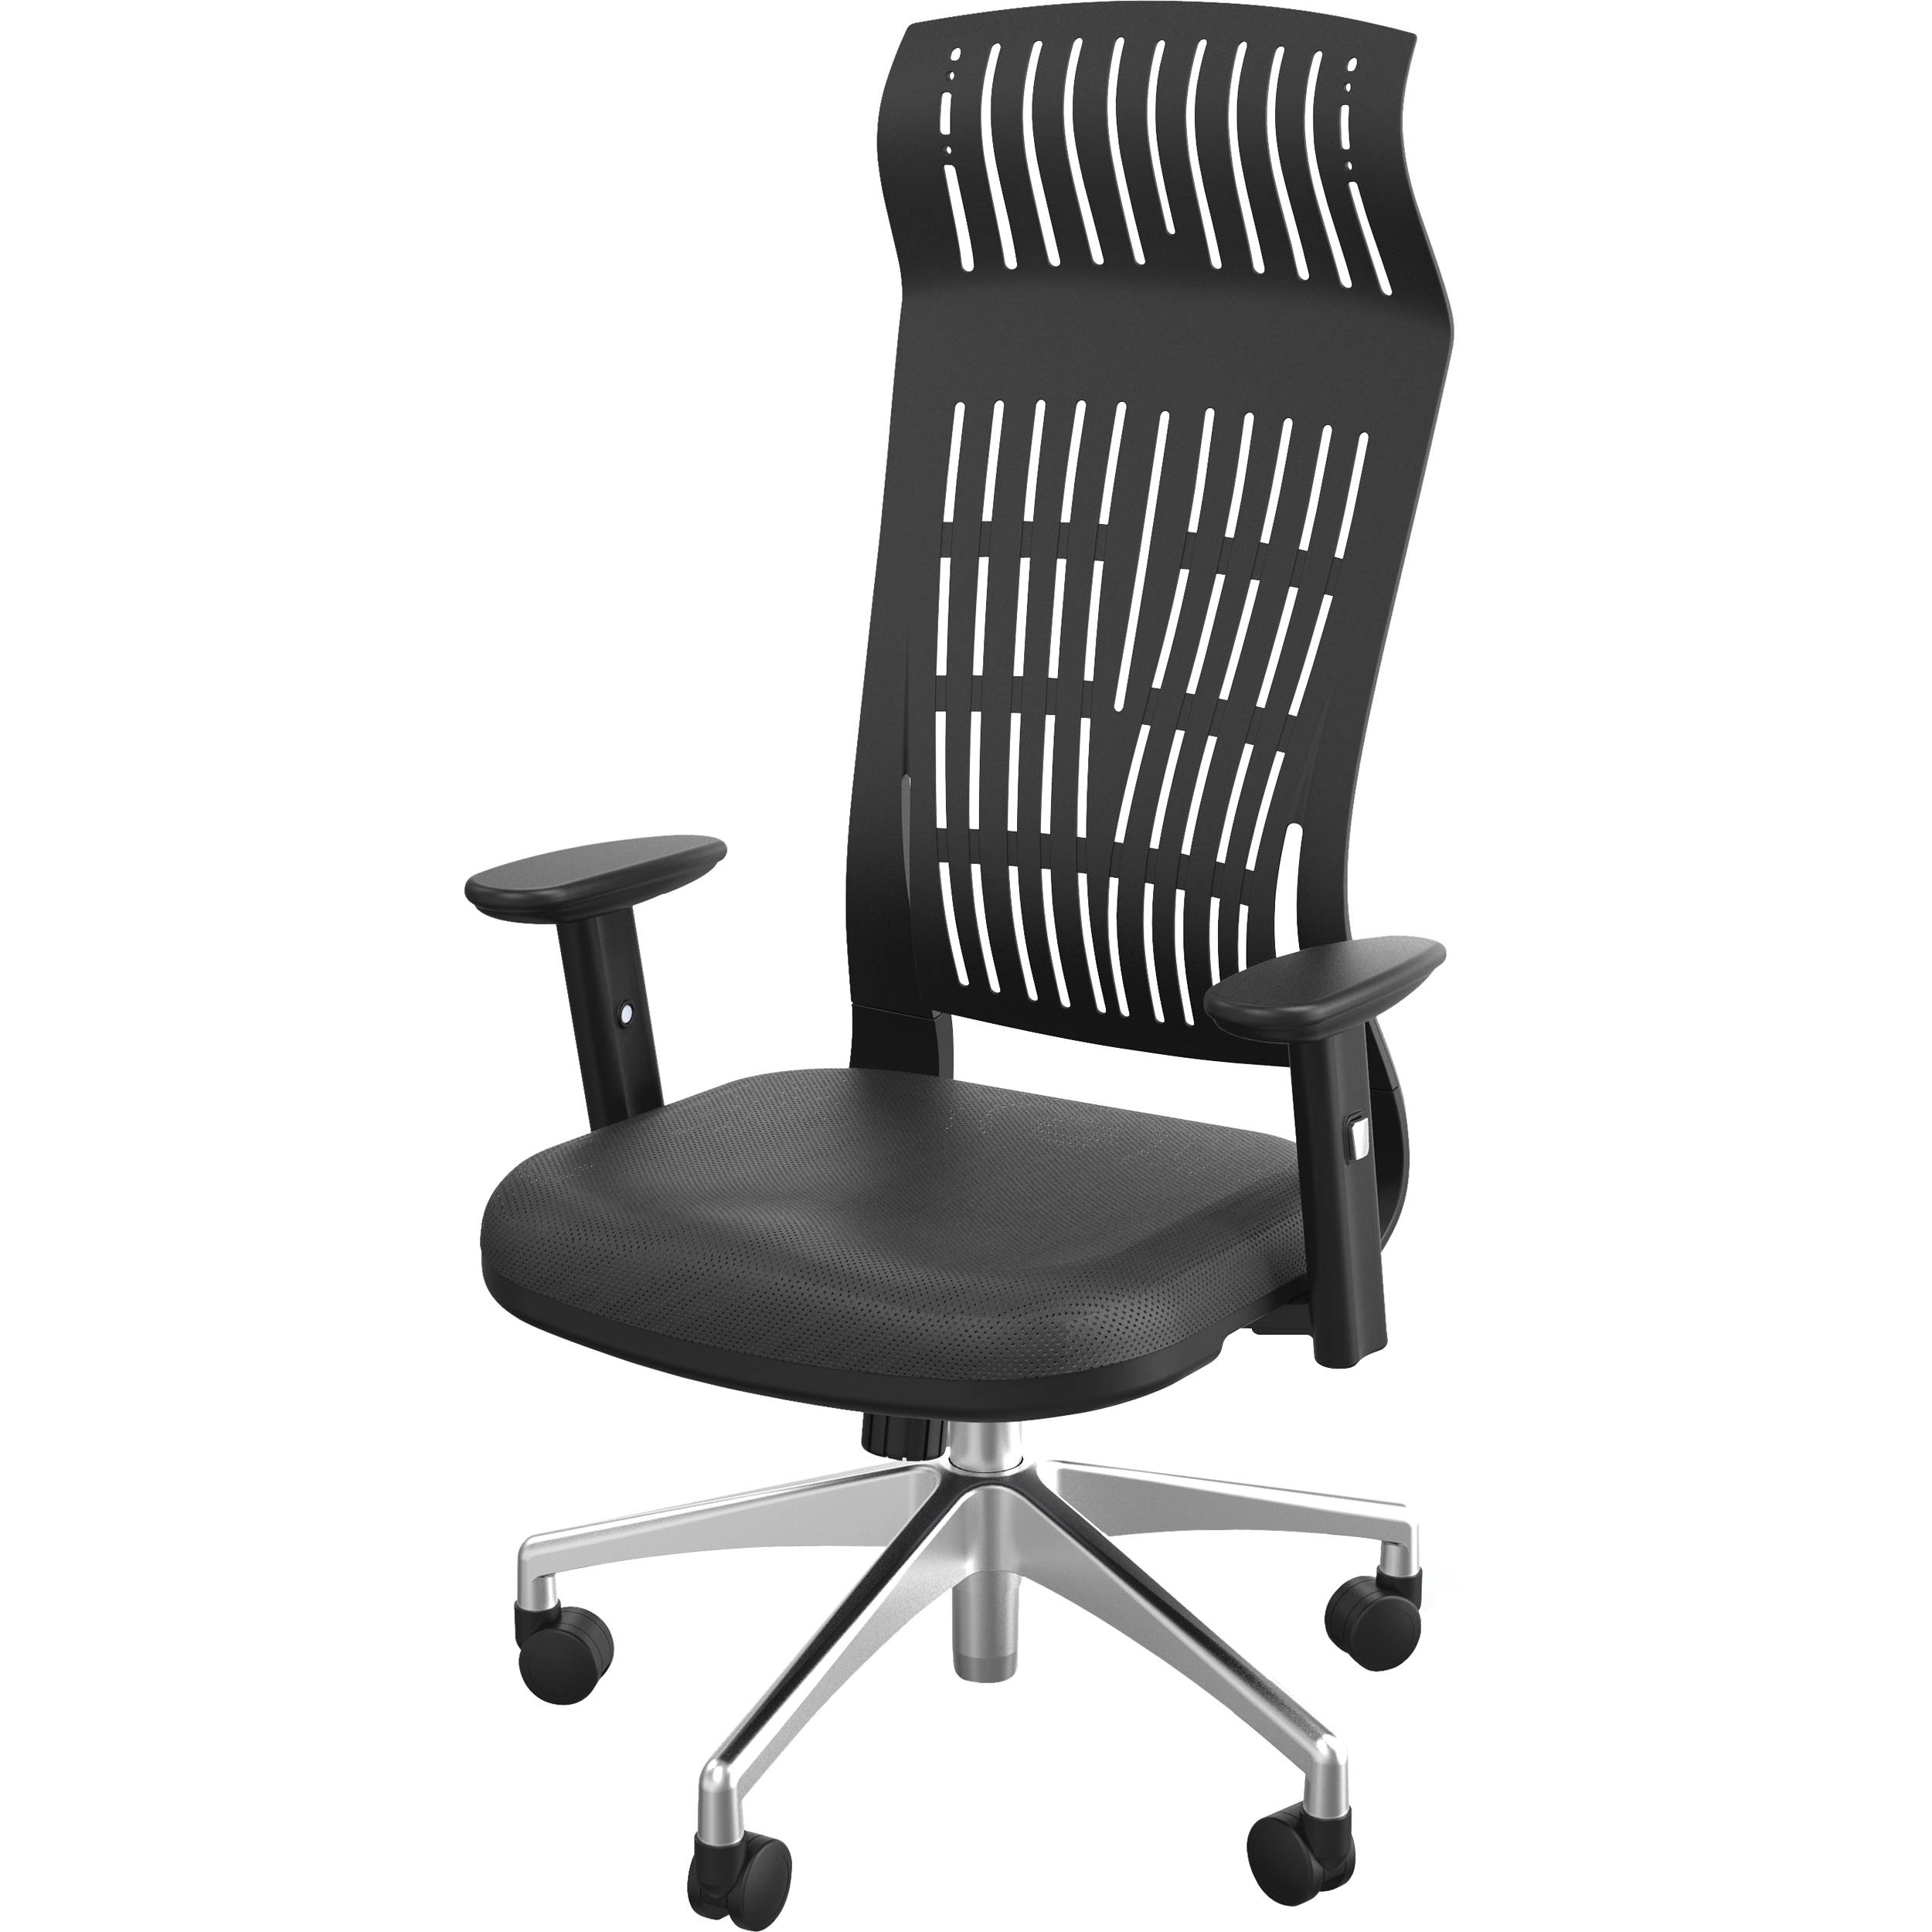 Balt Fly High Back Office Chair With Adjustable Arms 34740 B H